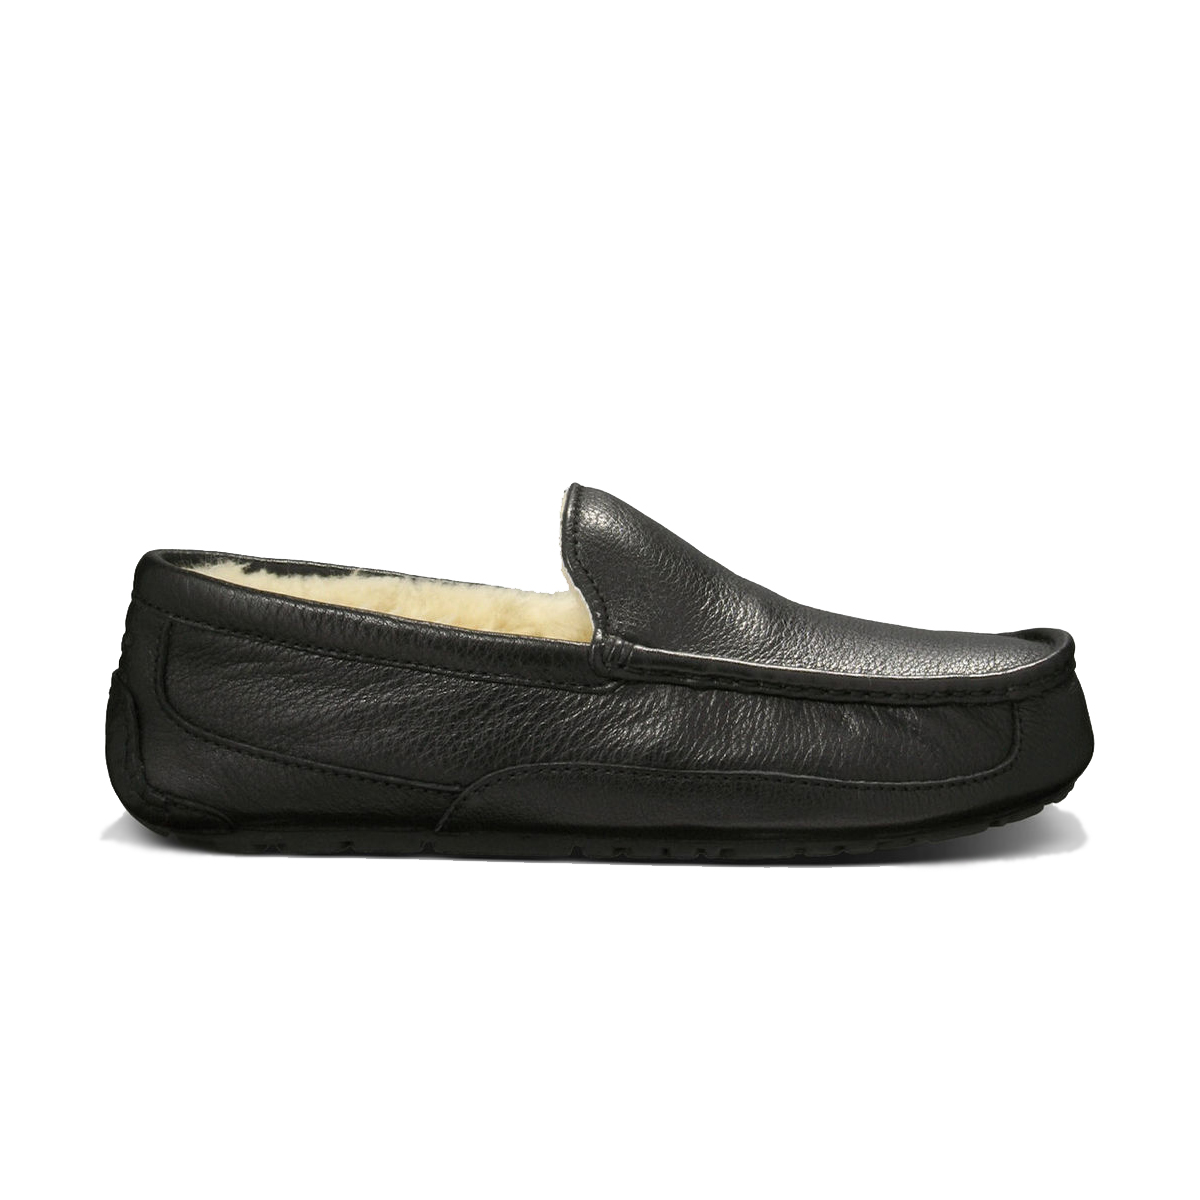 904706bdb8f UGG Ascot Slipper Black Leather Mens 5379B - Shop now   Shoolu.com